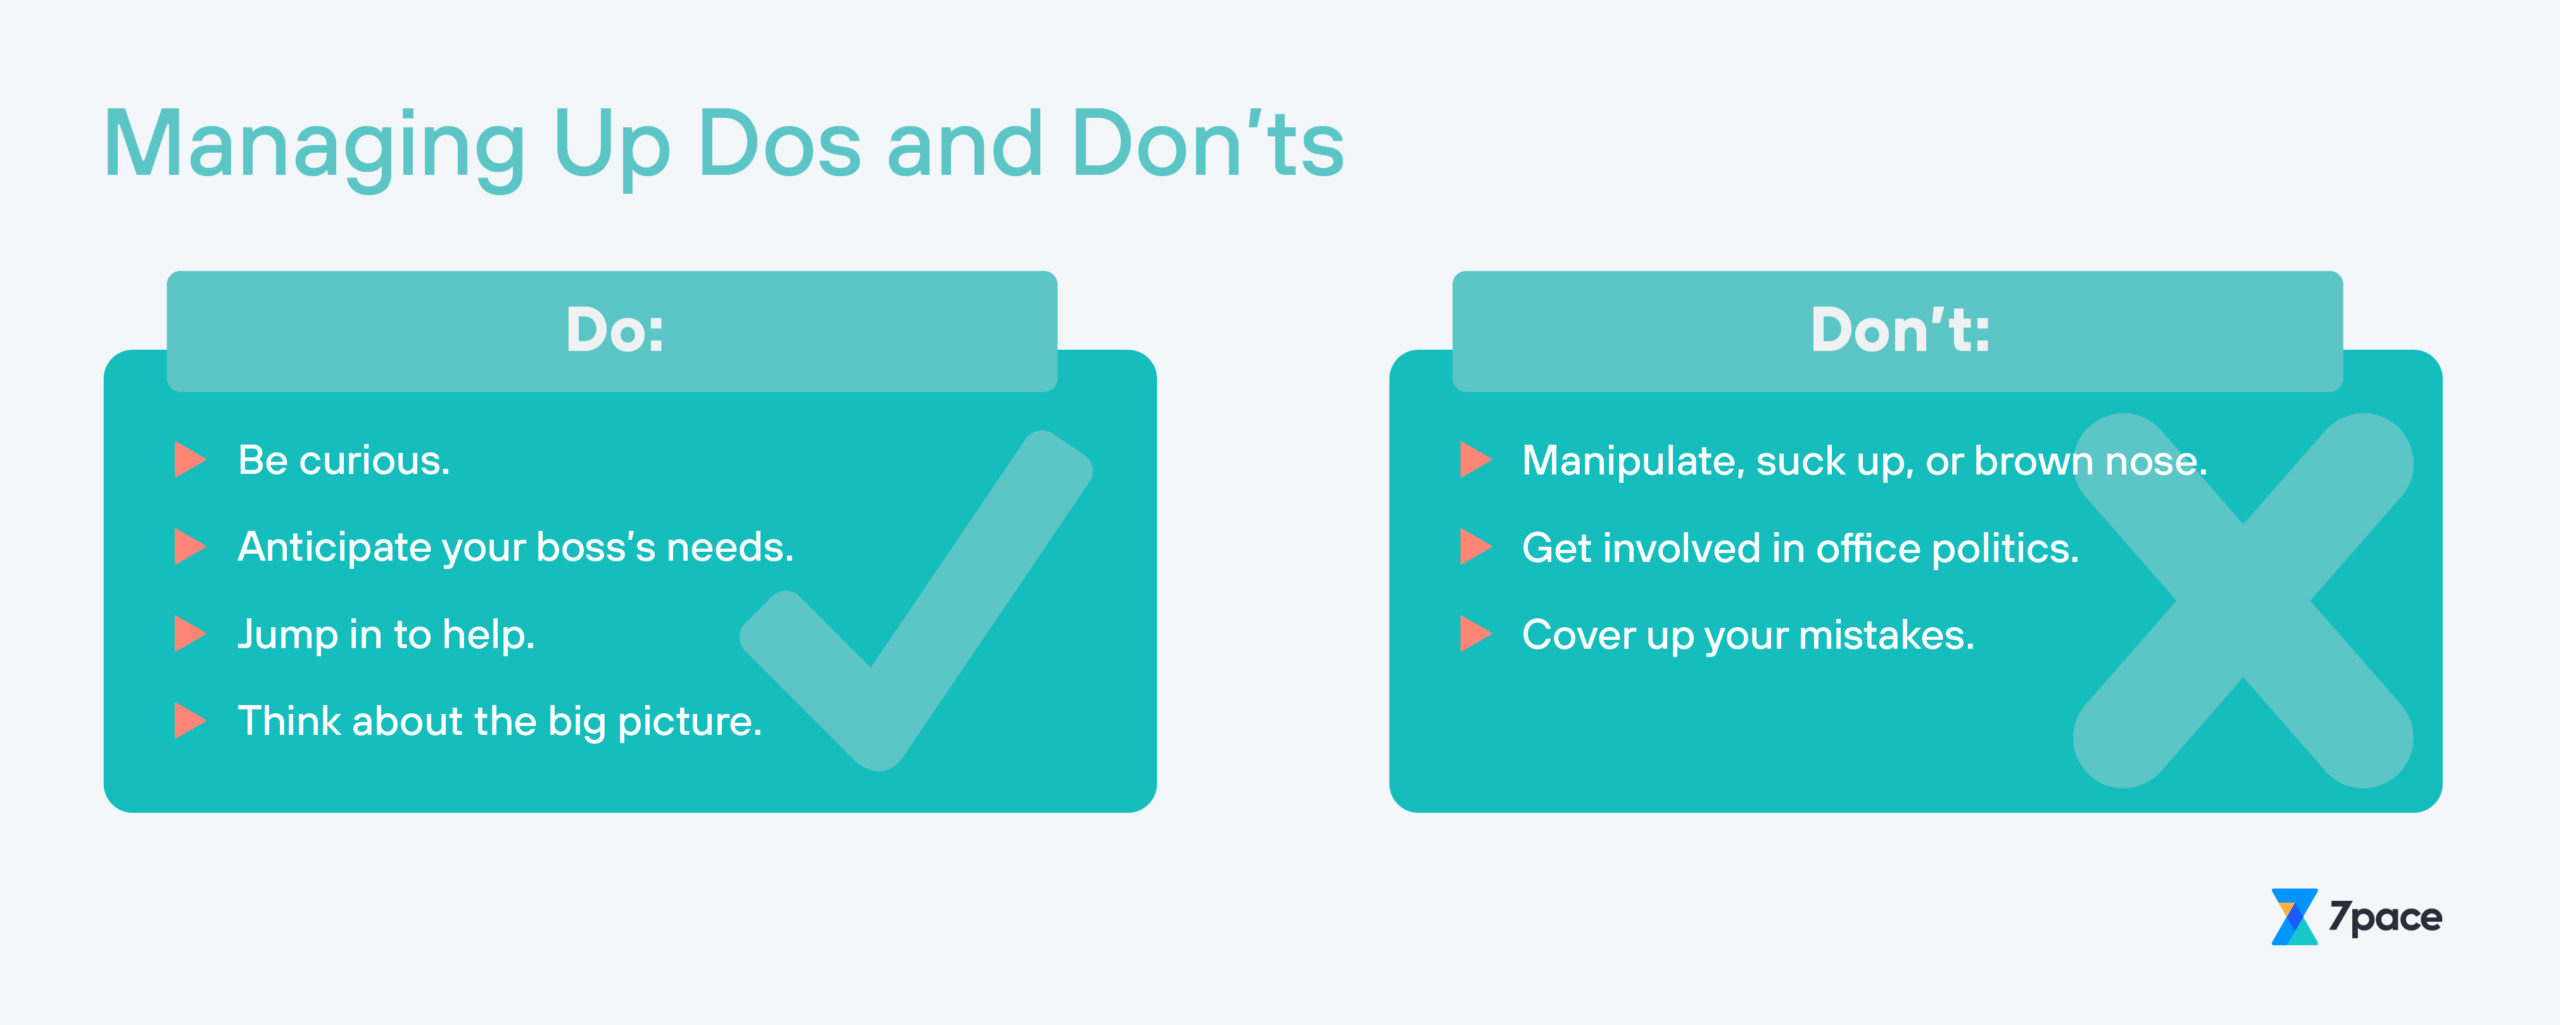 Best Practices for Managing Up